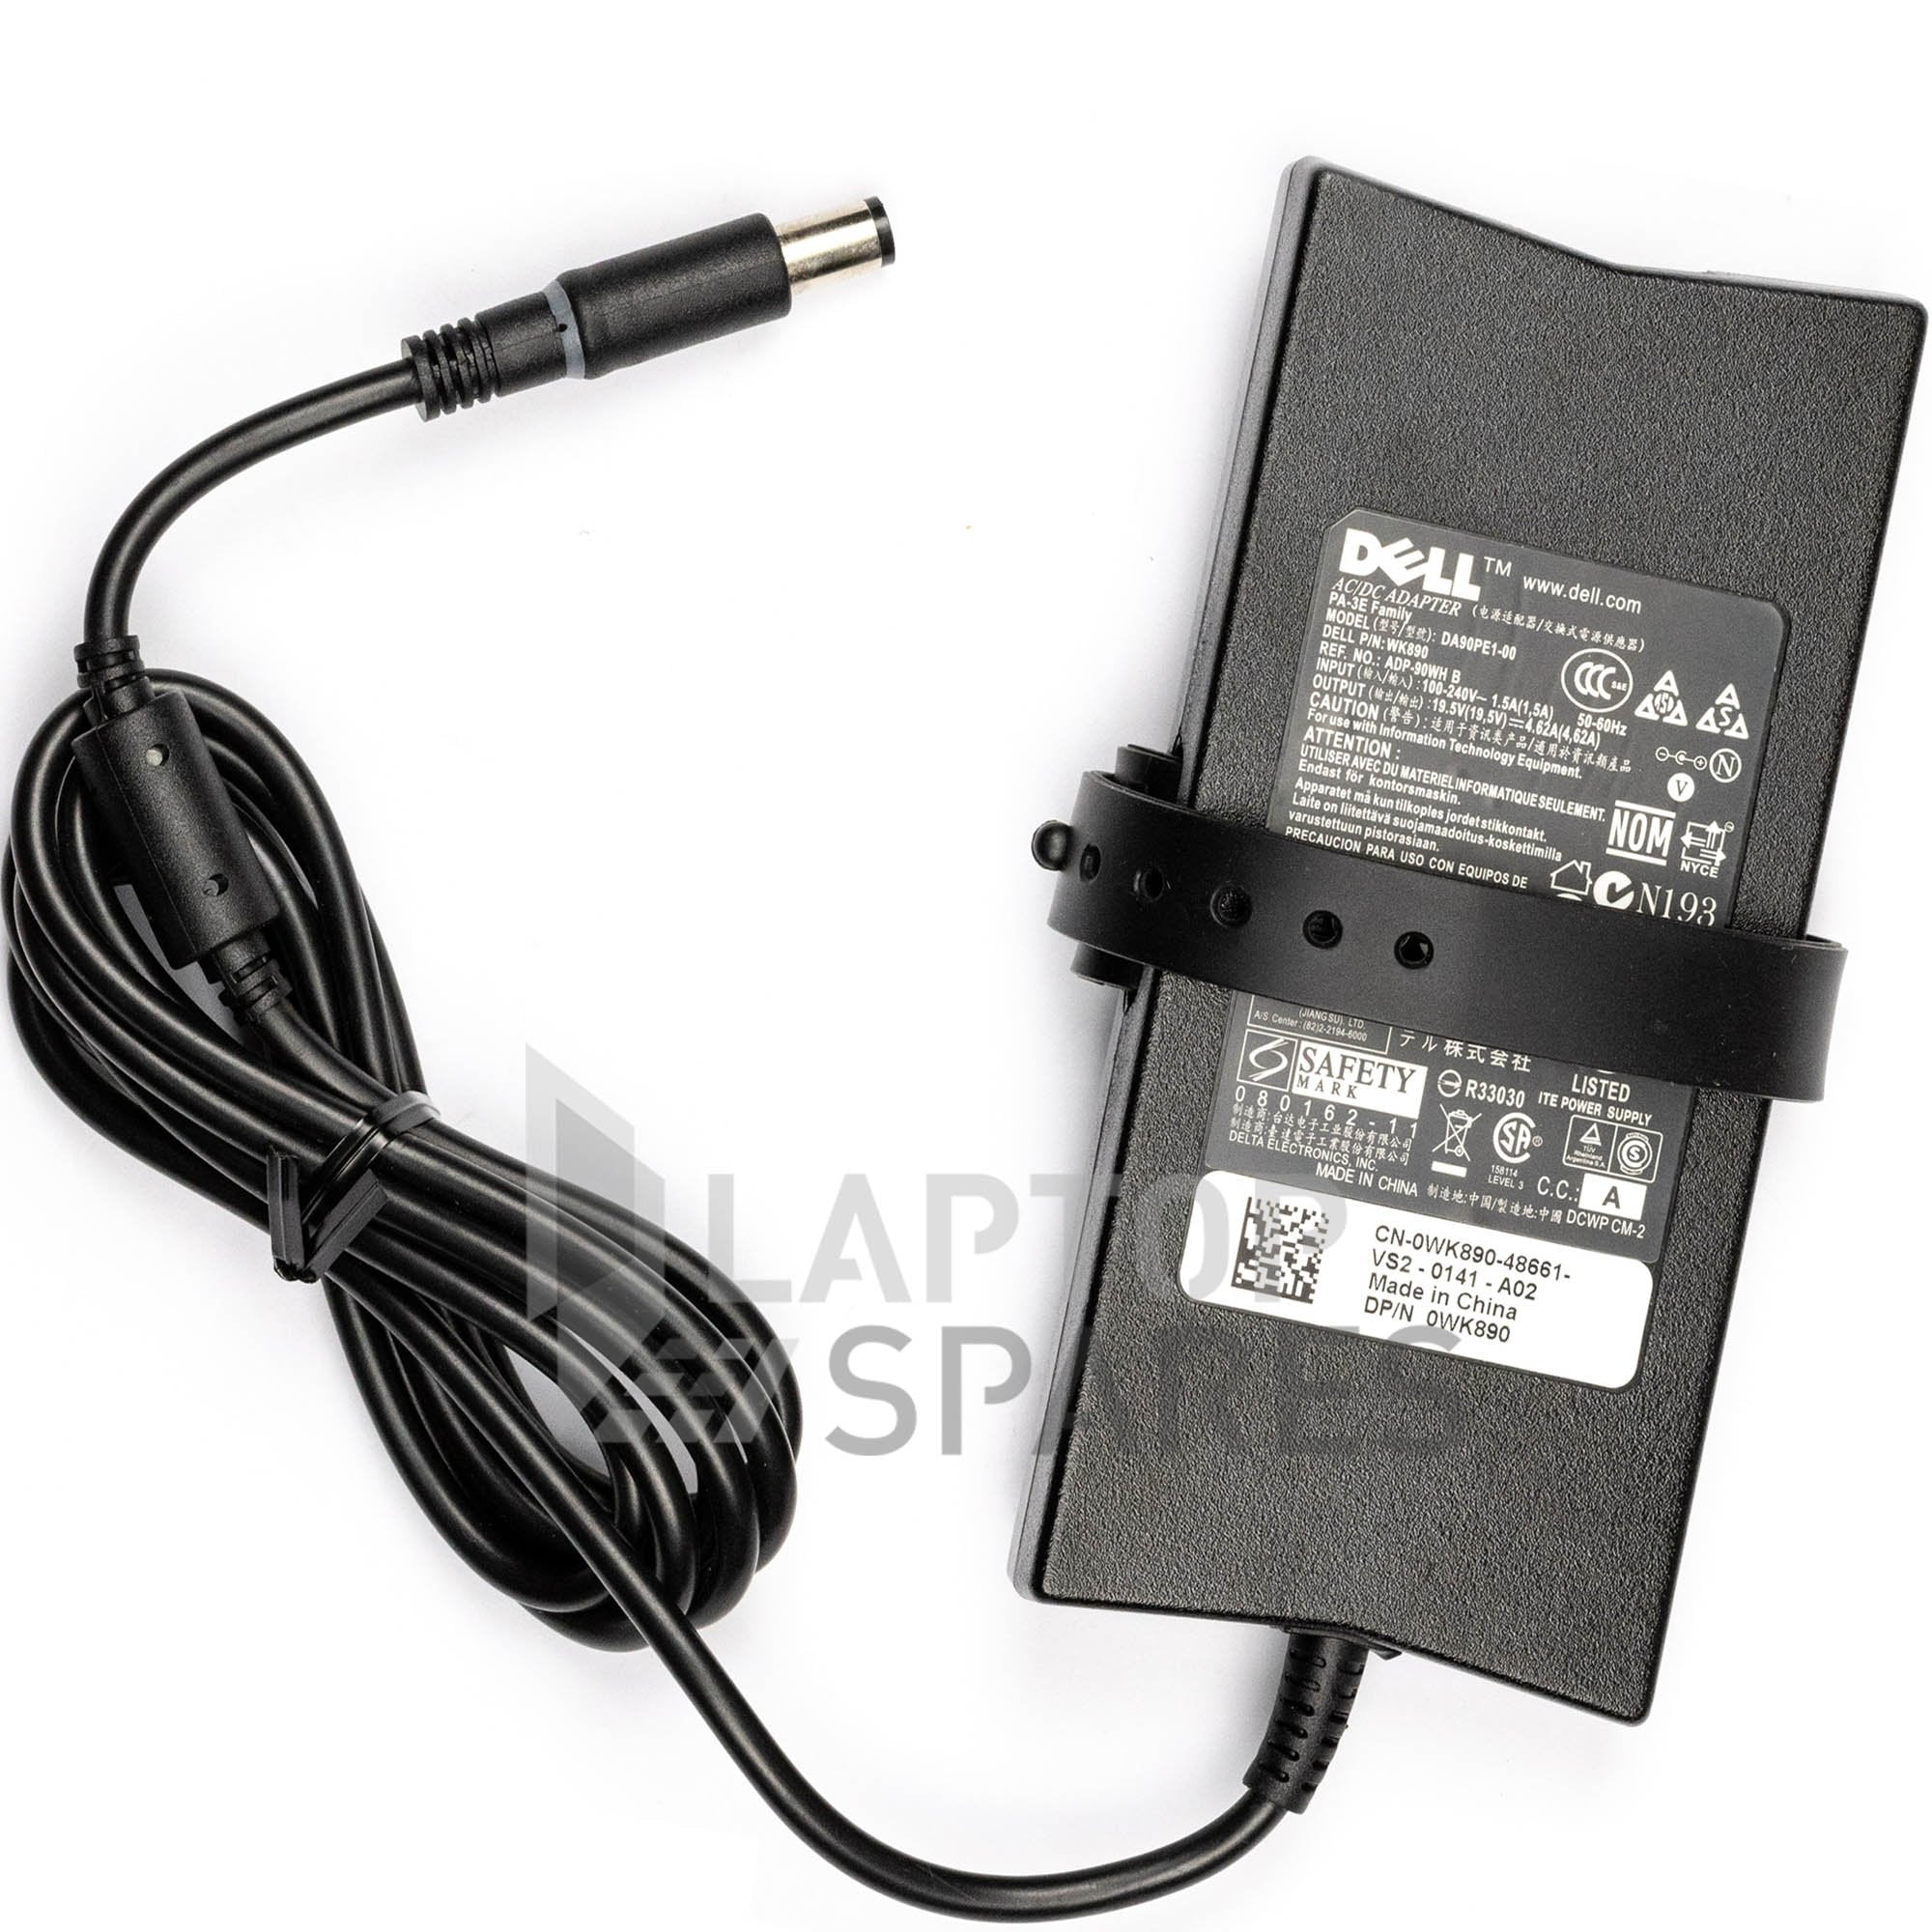 Dell XPS 7100 Laptop Slim AC Adapter Charger